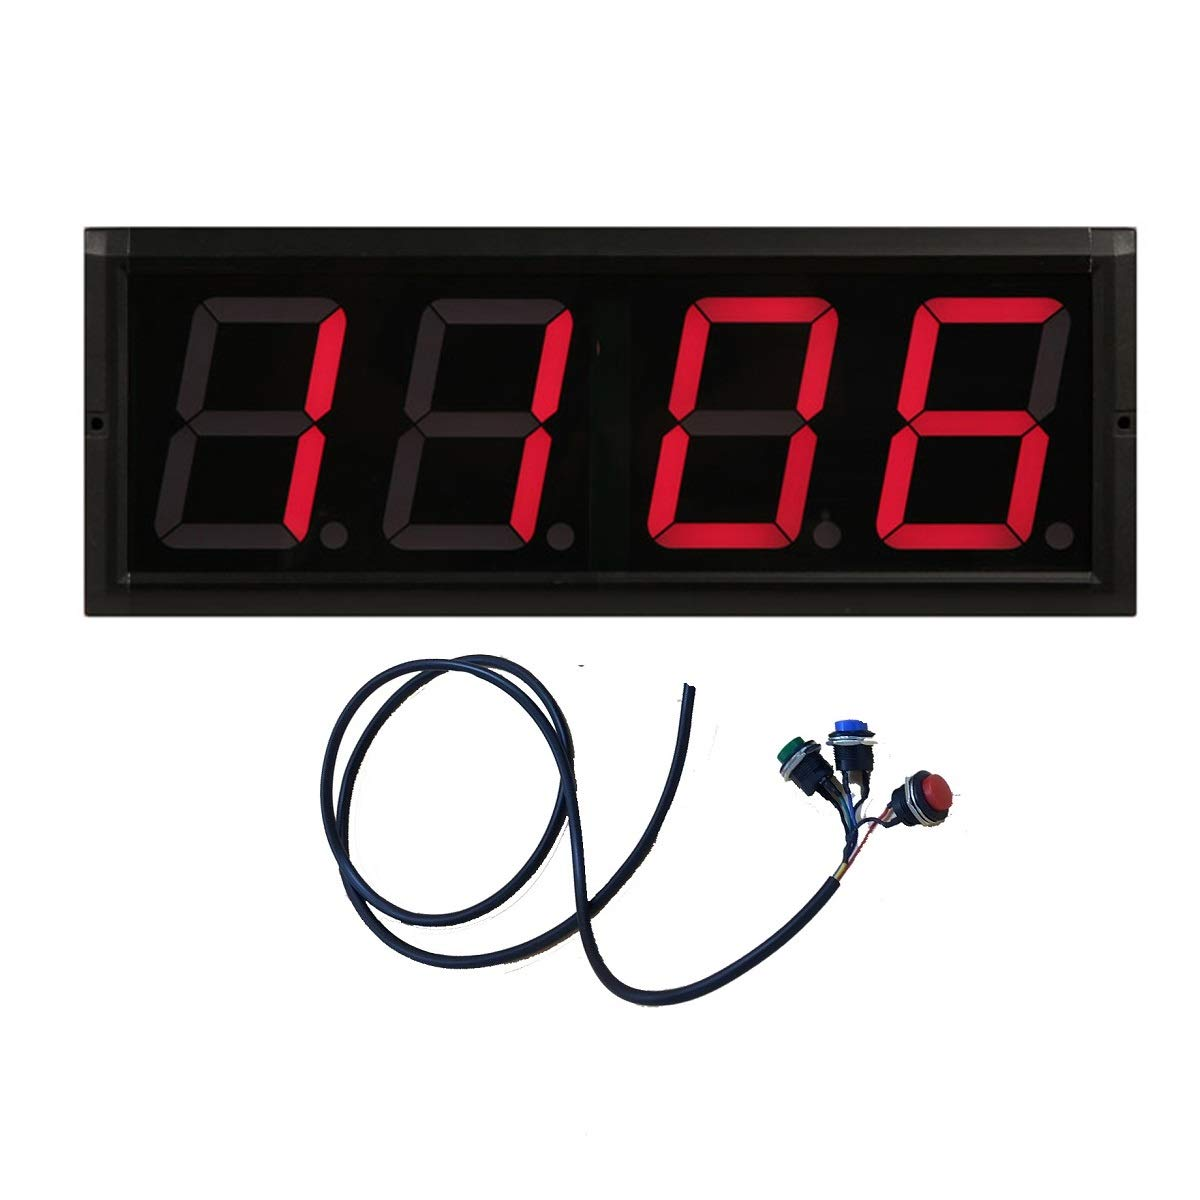 BTBSIGN 4'' 4Digits Large LED Counter Visual LED Display Count Down/Up by Wired Buttons and Wireless Remote BTB SIGN CO. LTD